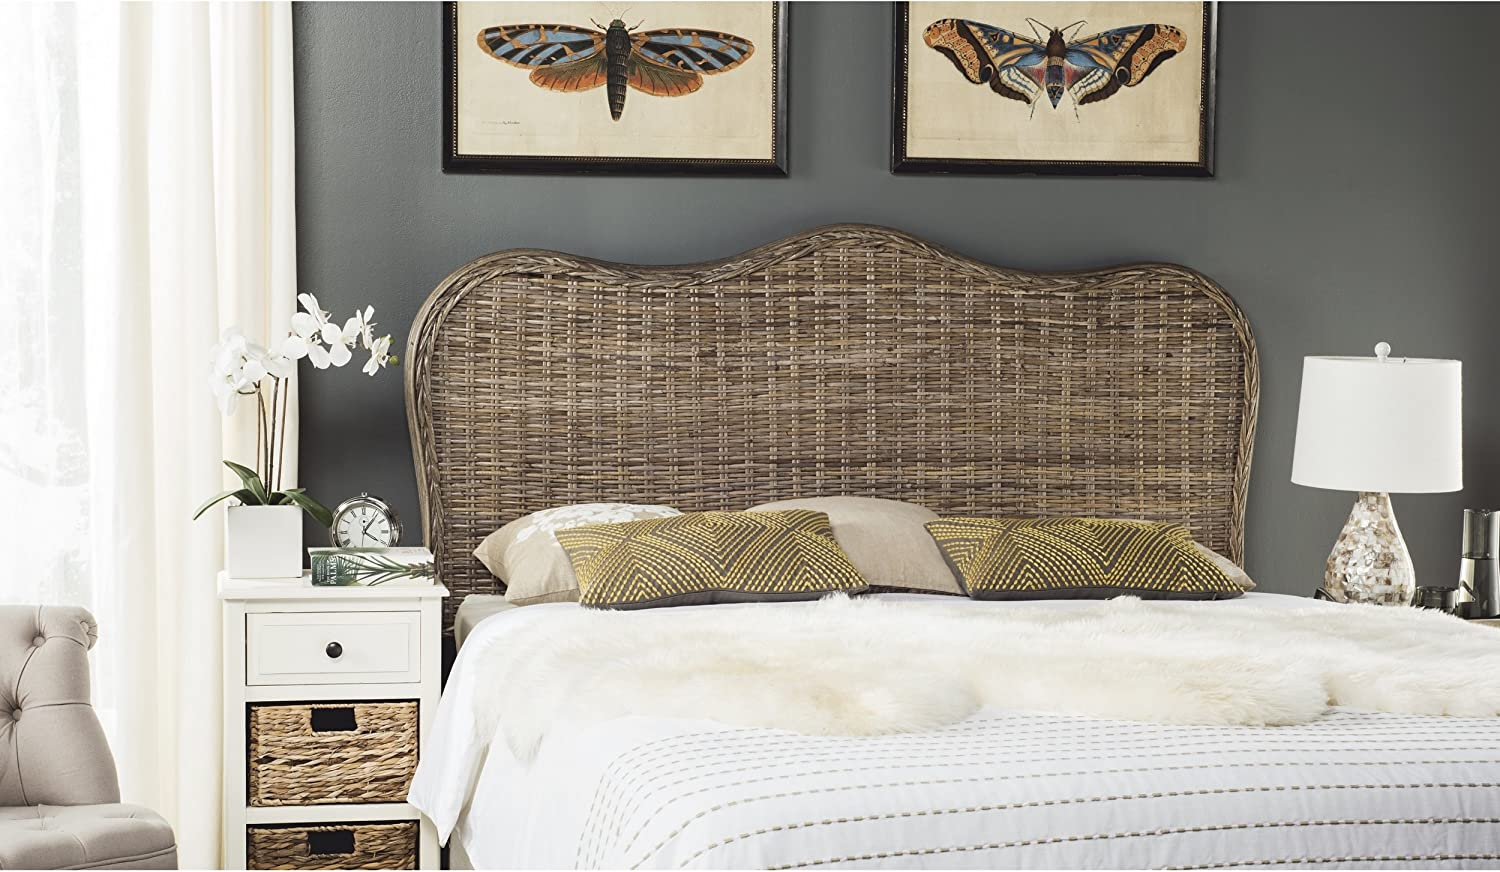 Safavieh Home Collection Imelda Grey Headboard Queen